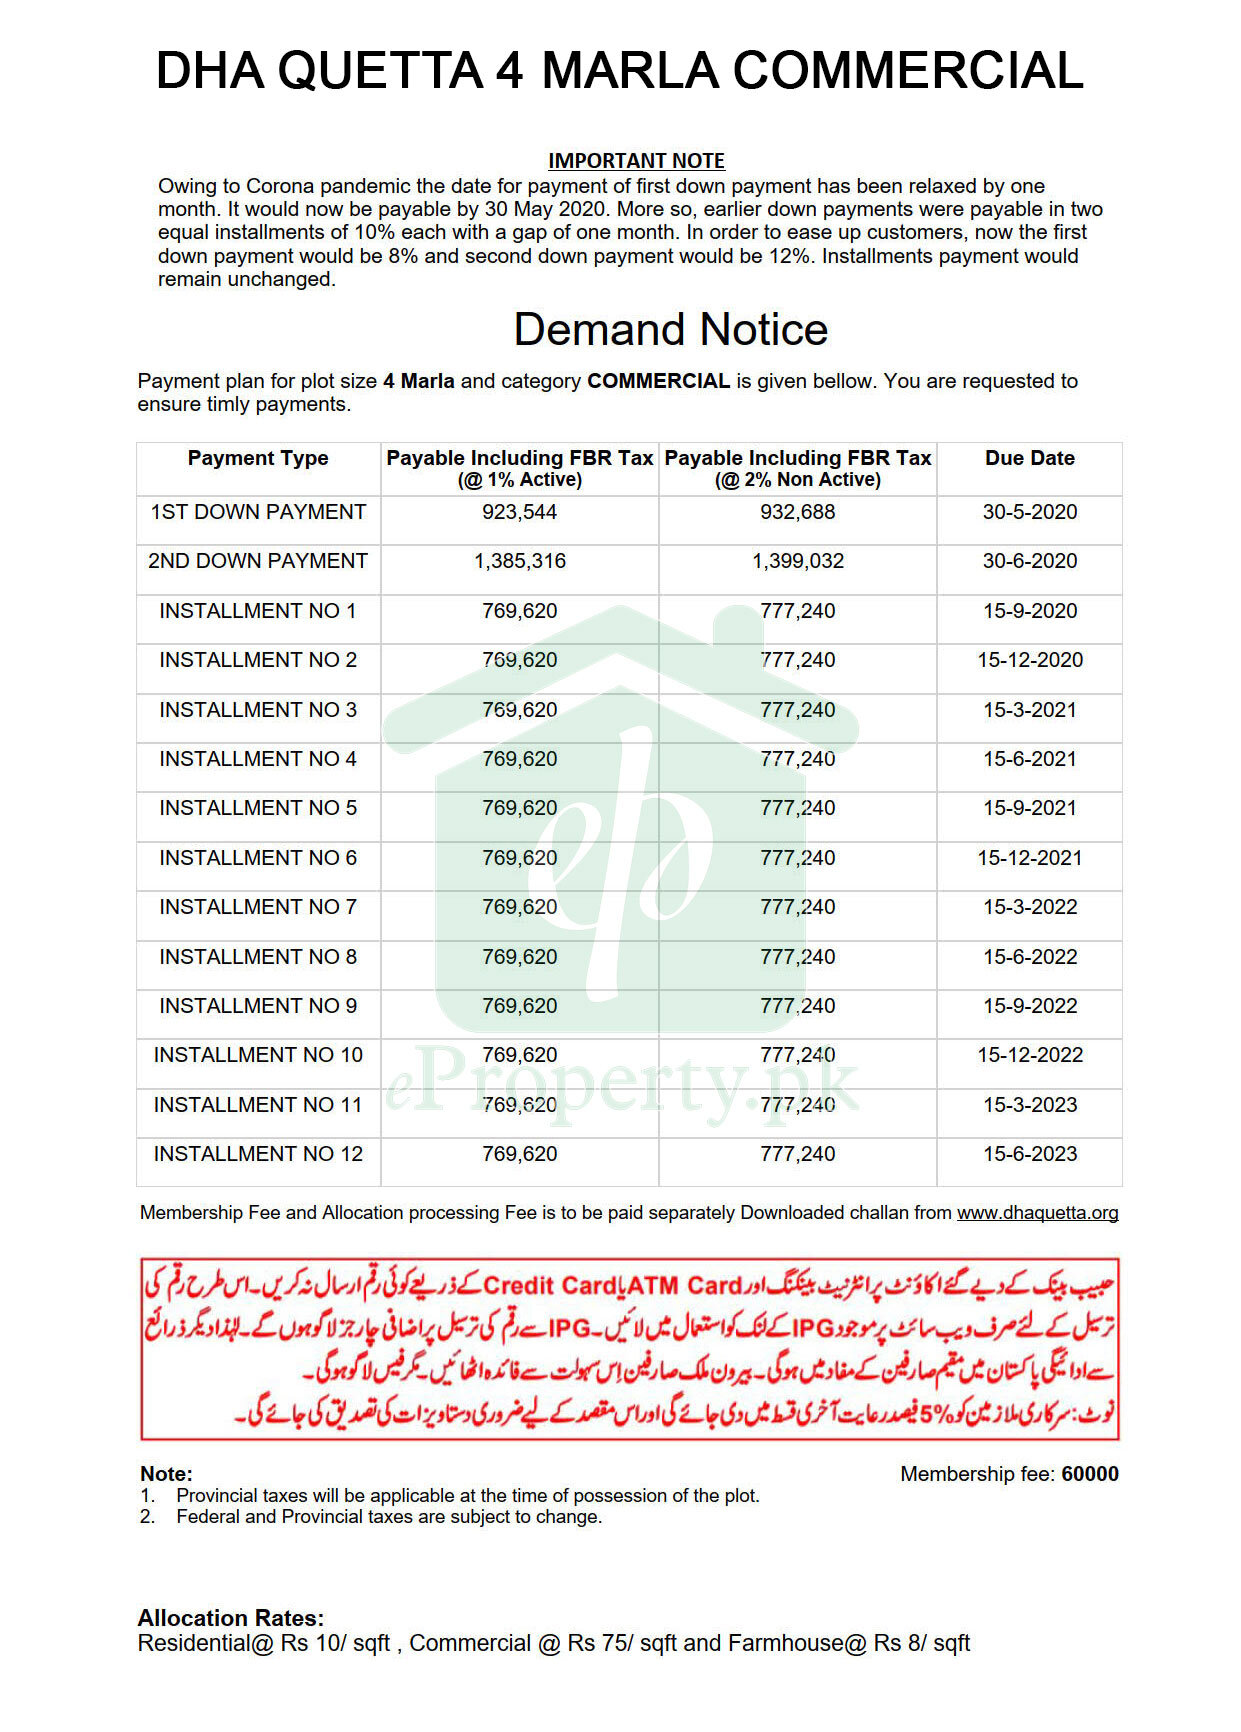 DHA Quetta 4 Marla Commercial Payment Schedule